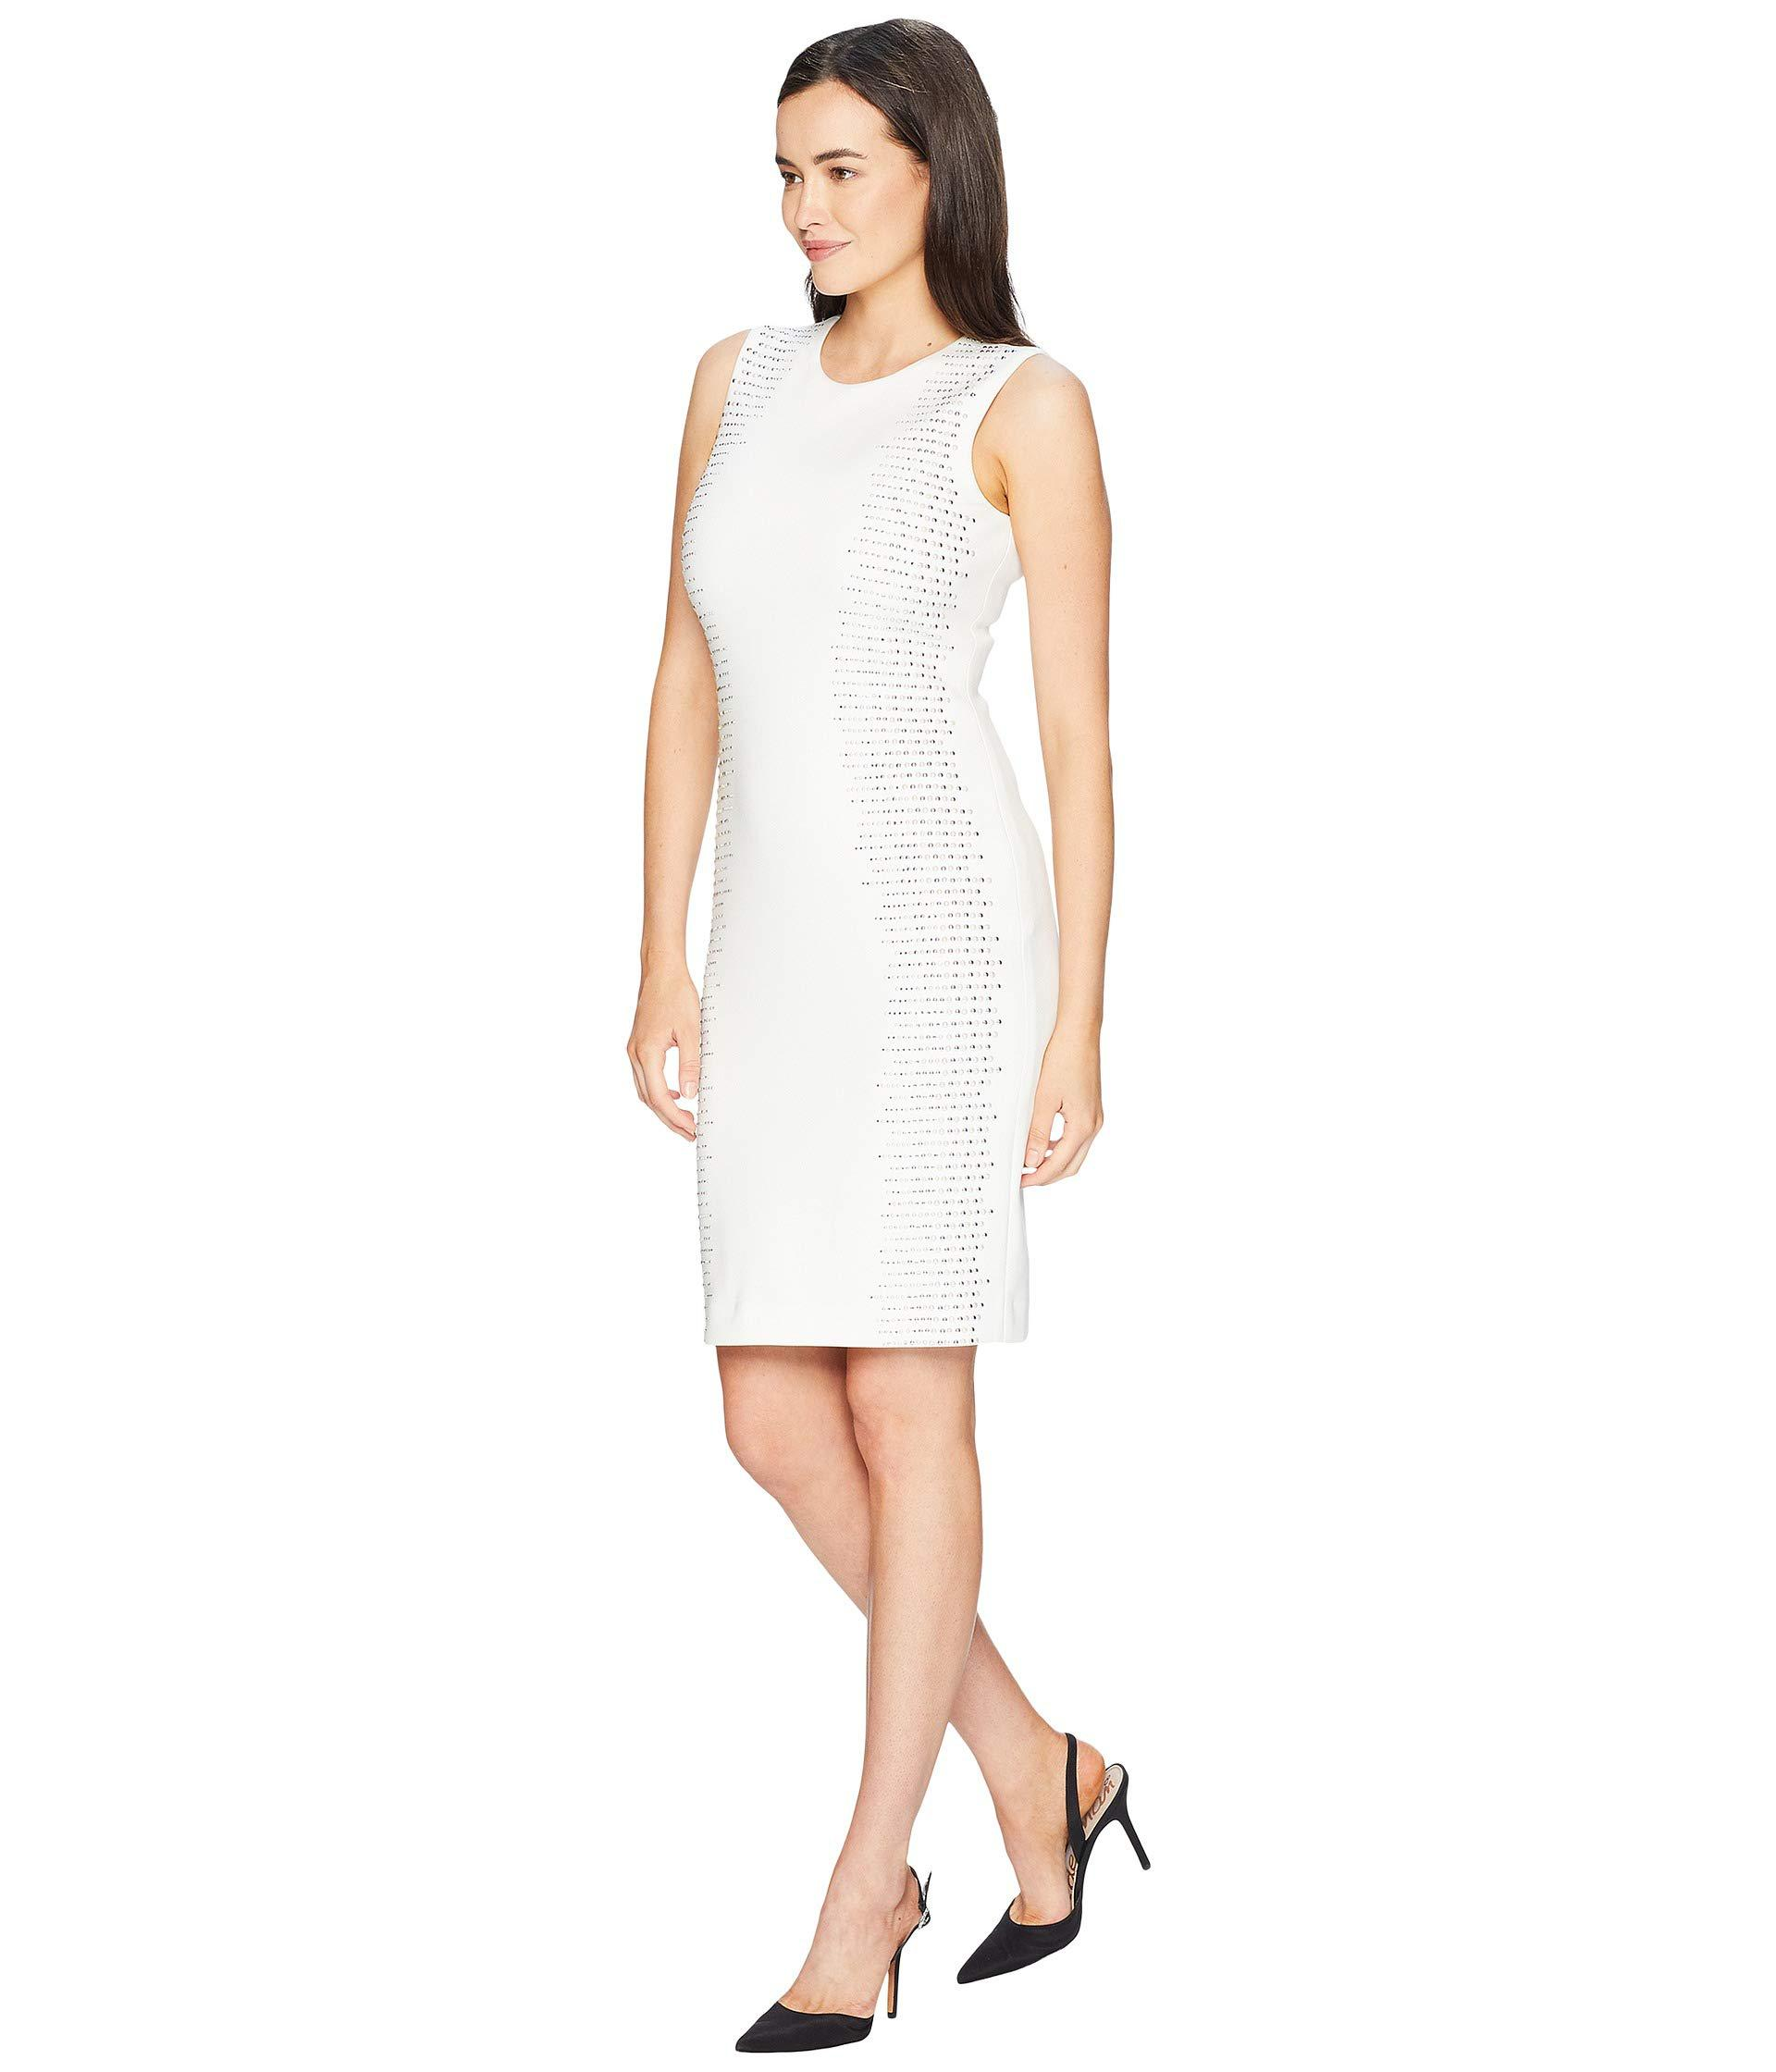 a040396fe625c Lyst - Calvin Klein Embellished Side Panels Sheath Dress Cd8m18tp in White  - Save 58%